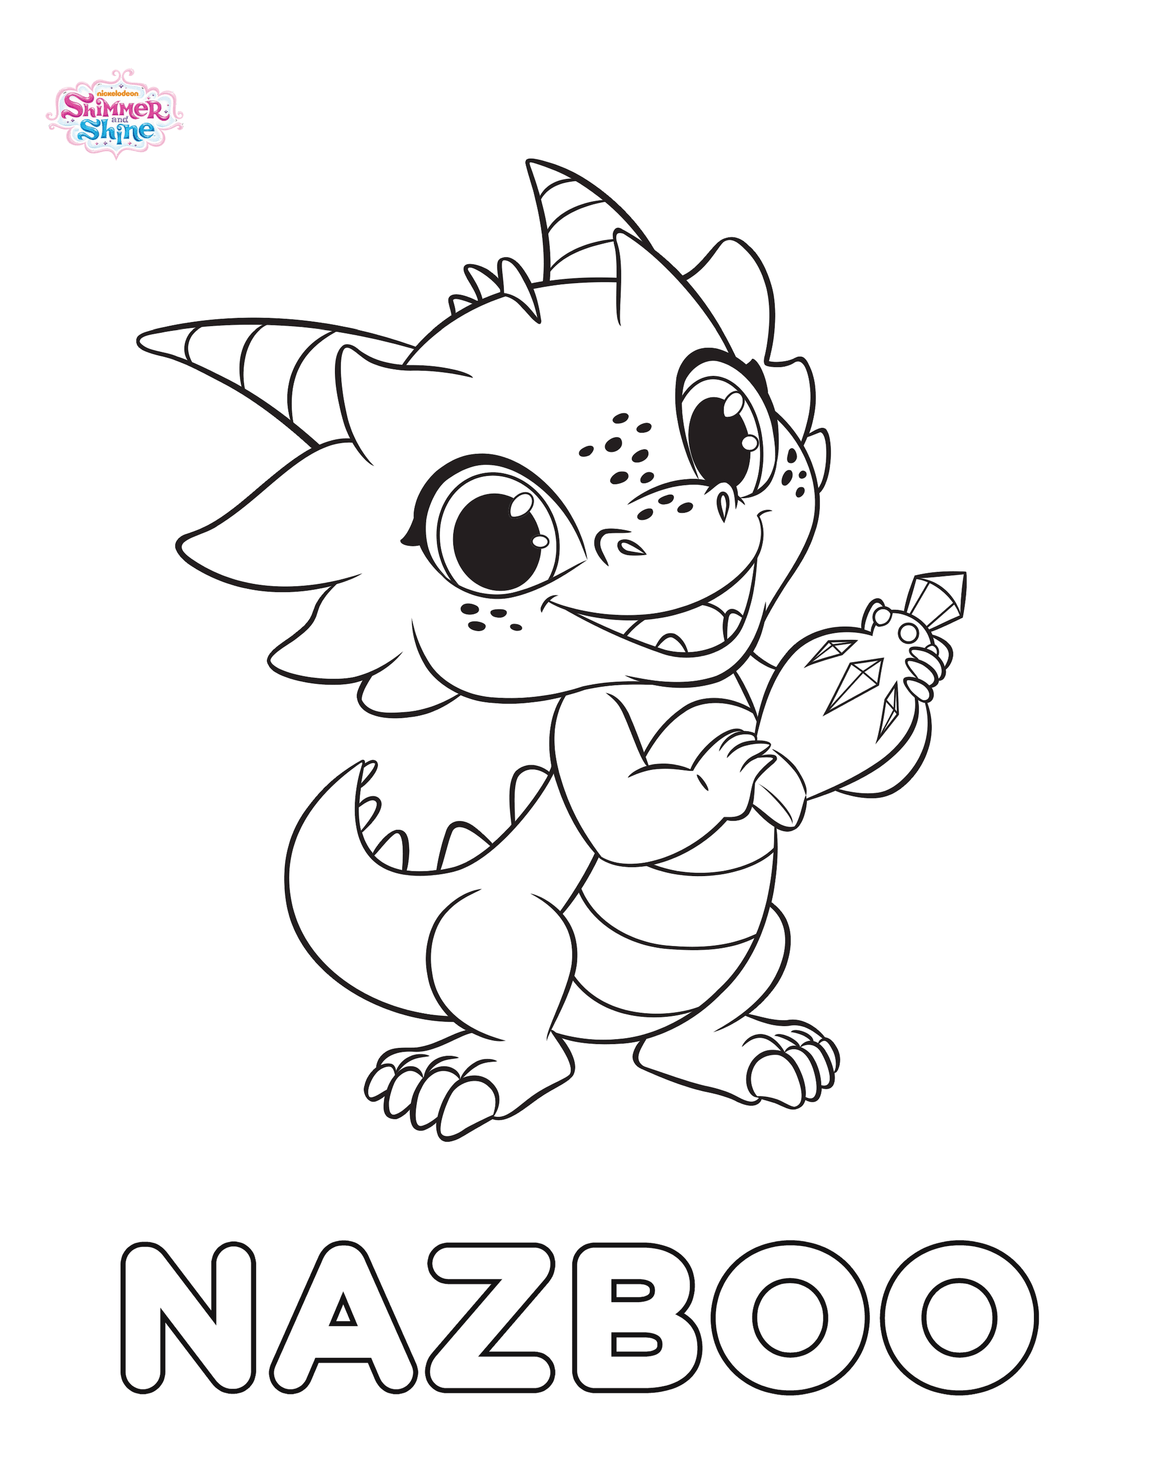 Nazboo Coloring Page